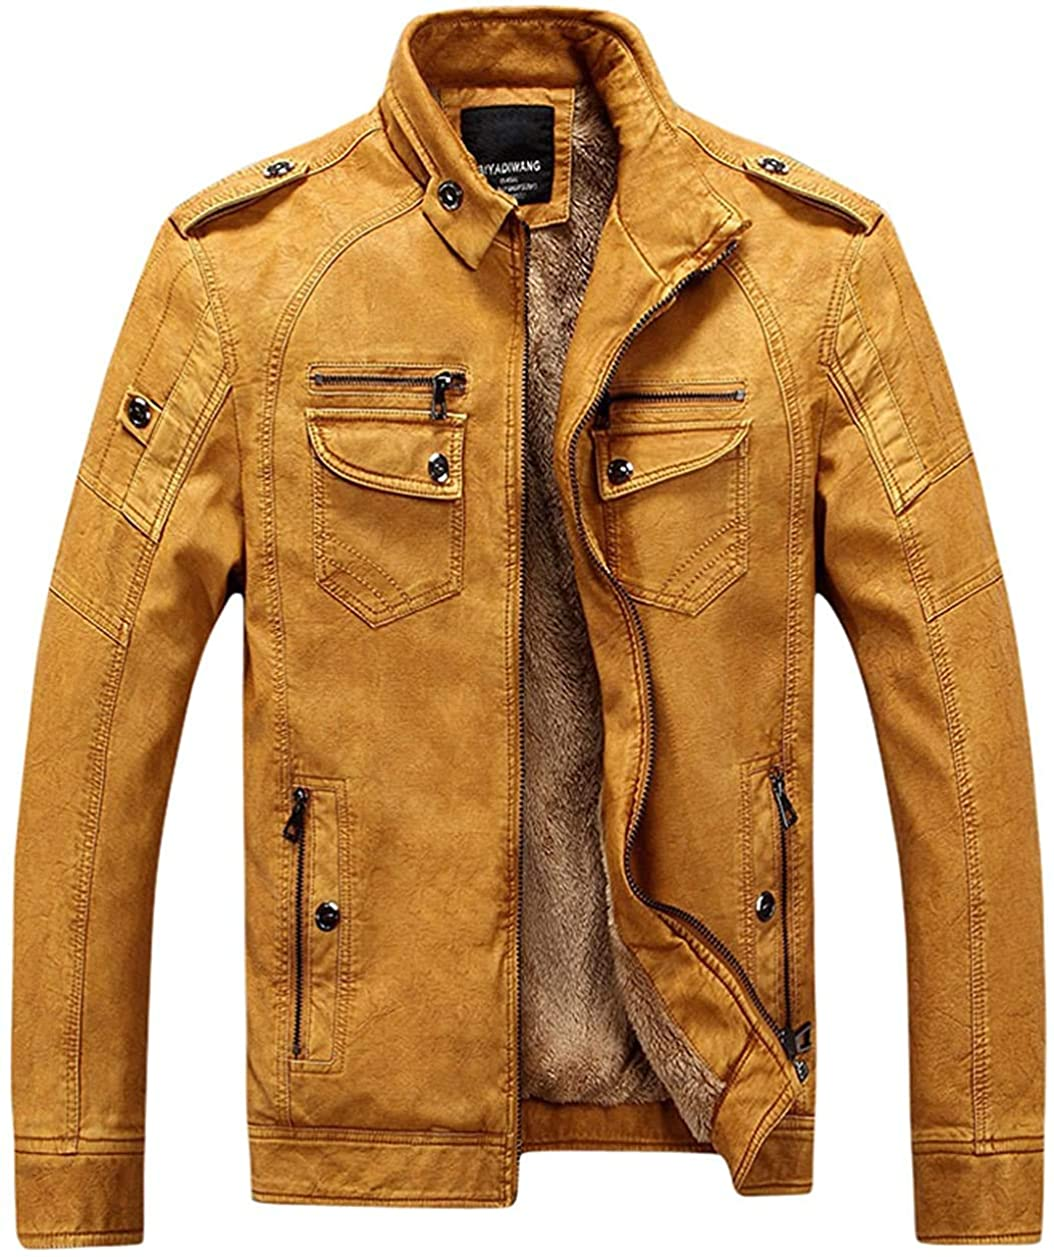 Gsdgjgg Men's Casual Stand Collar Zip-Up Faux Leather Jacket with Fleece Lined,Yellow,X-Small